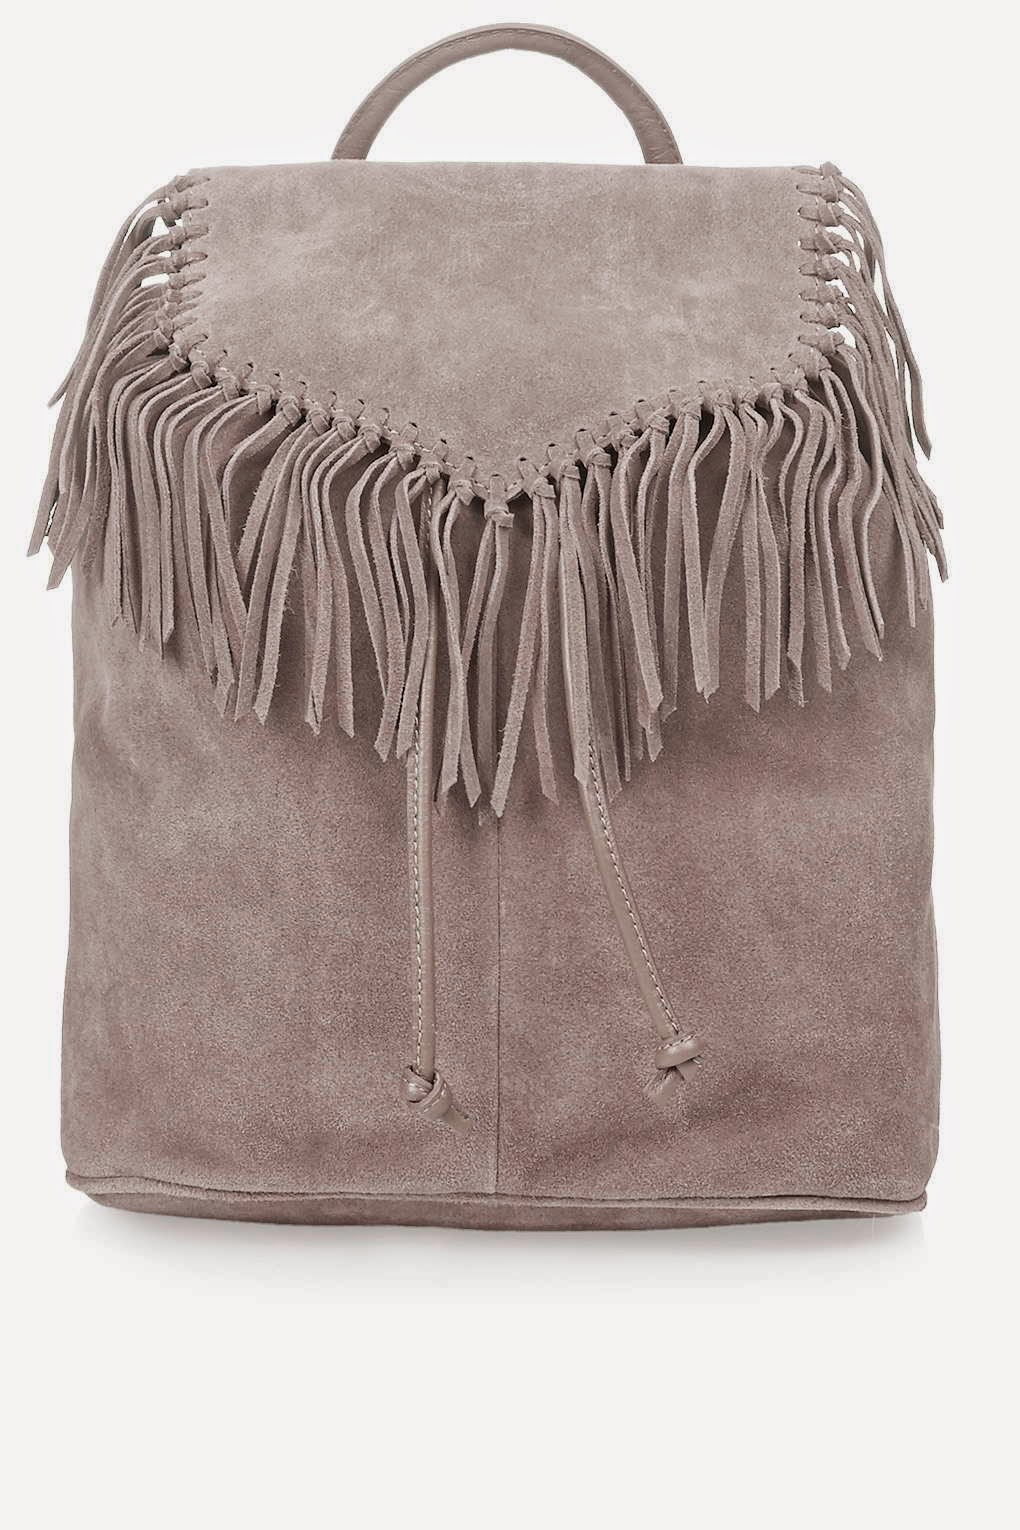 grey suede tassel backpack, grey suede fringed backpack,